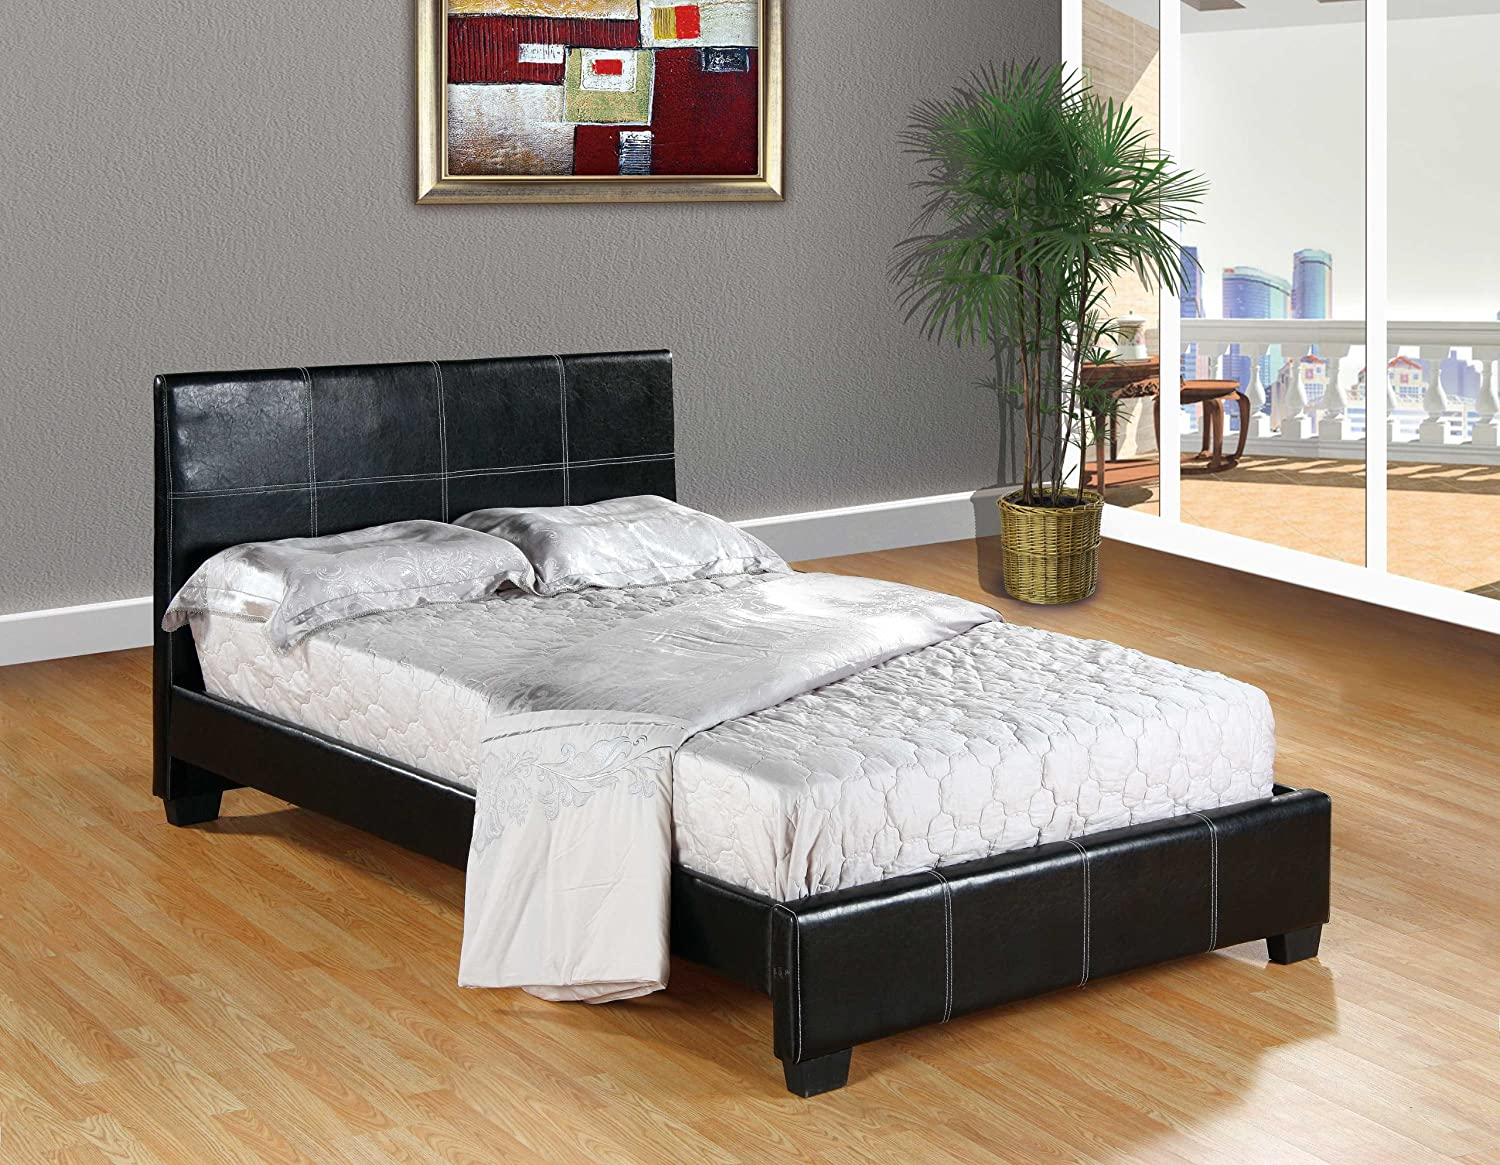 amazoncom home life leather platform bed with slats full complete bed 5 year warranty included kitchen u0026 dining